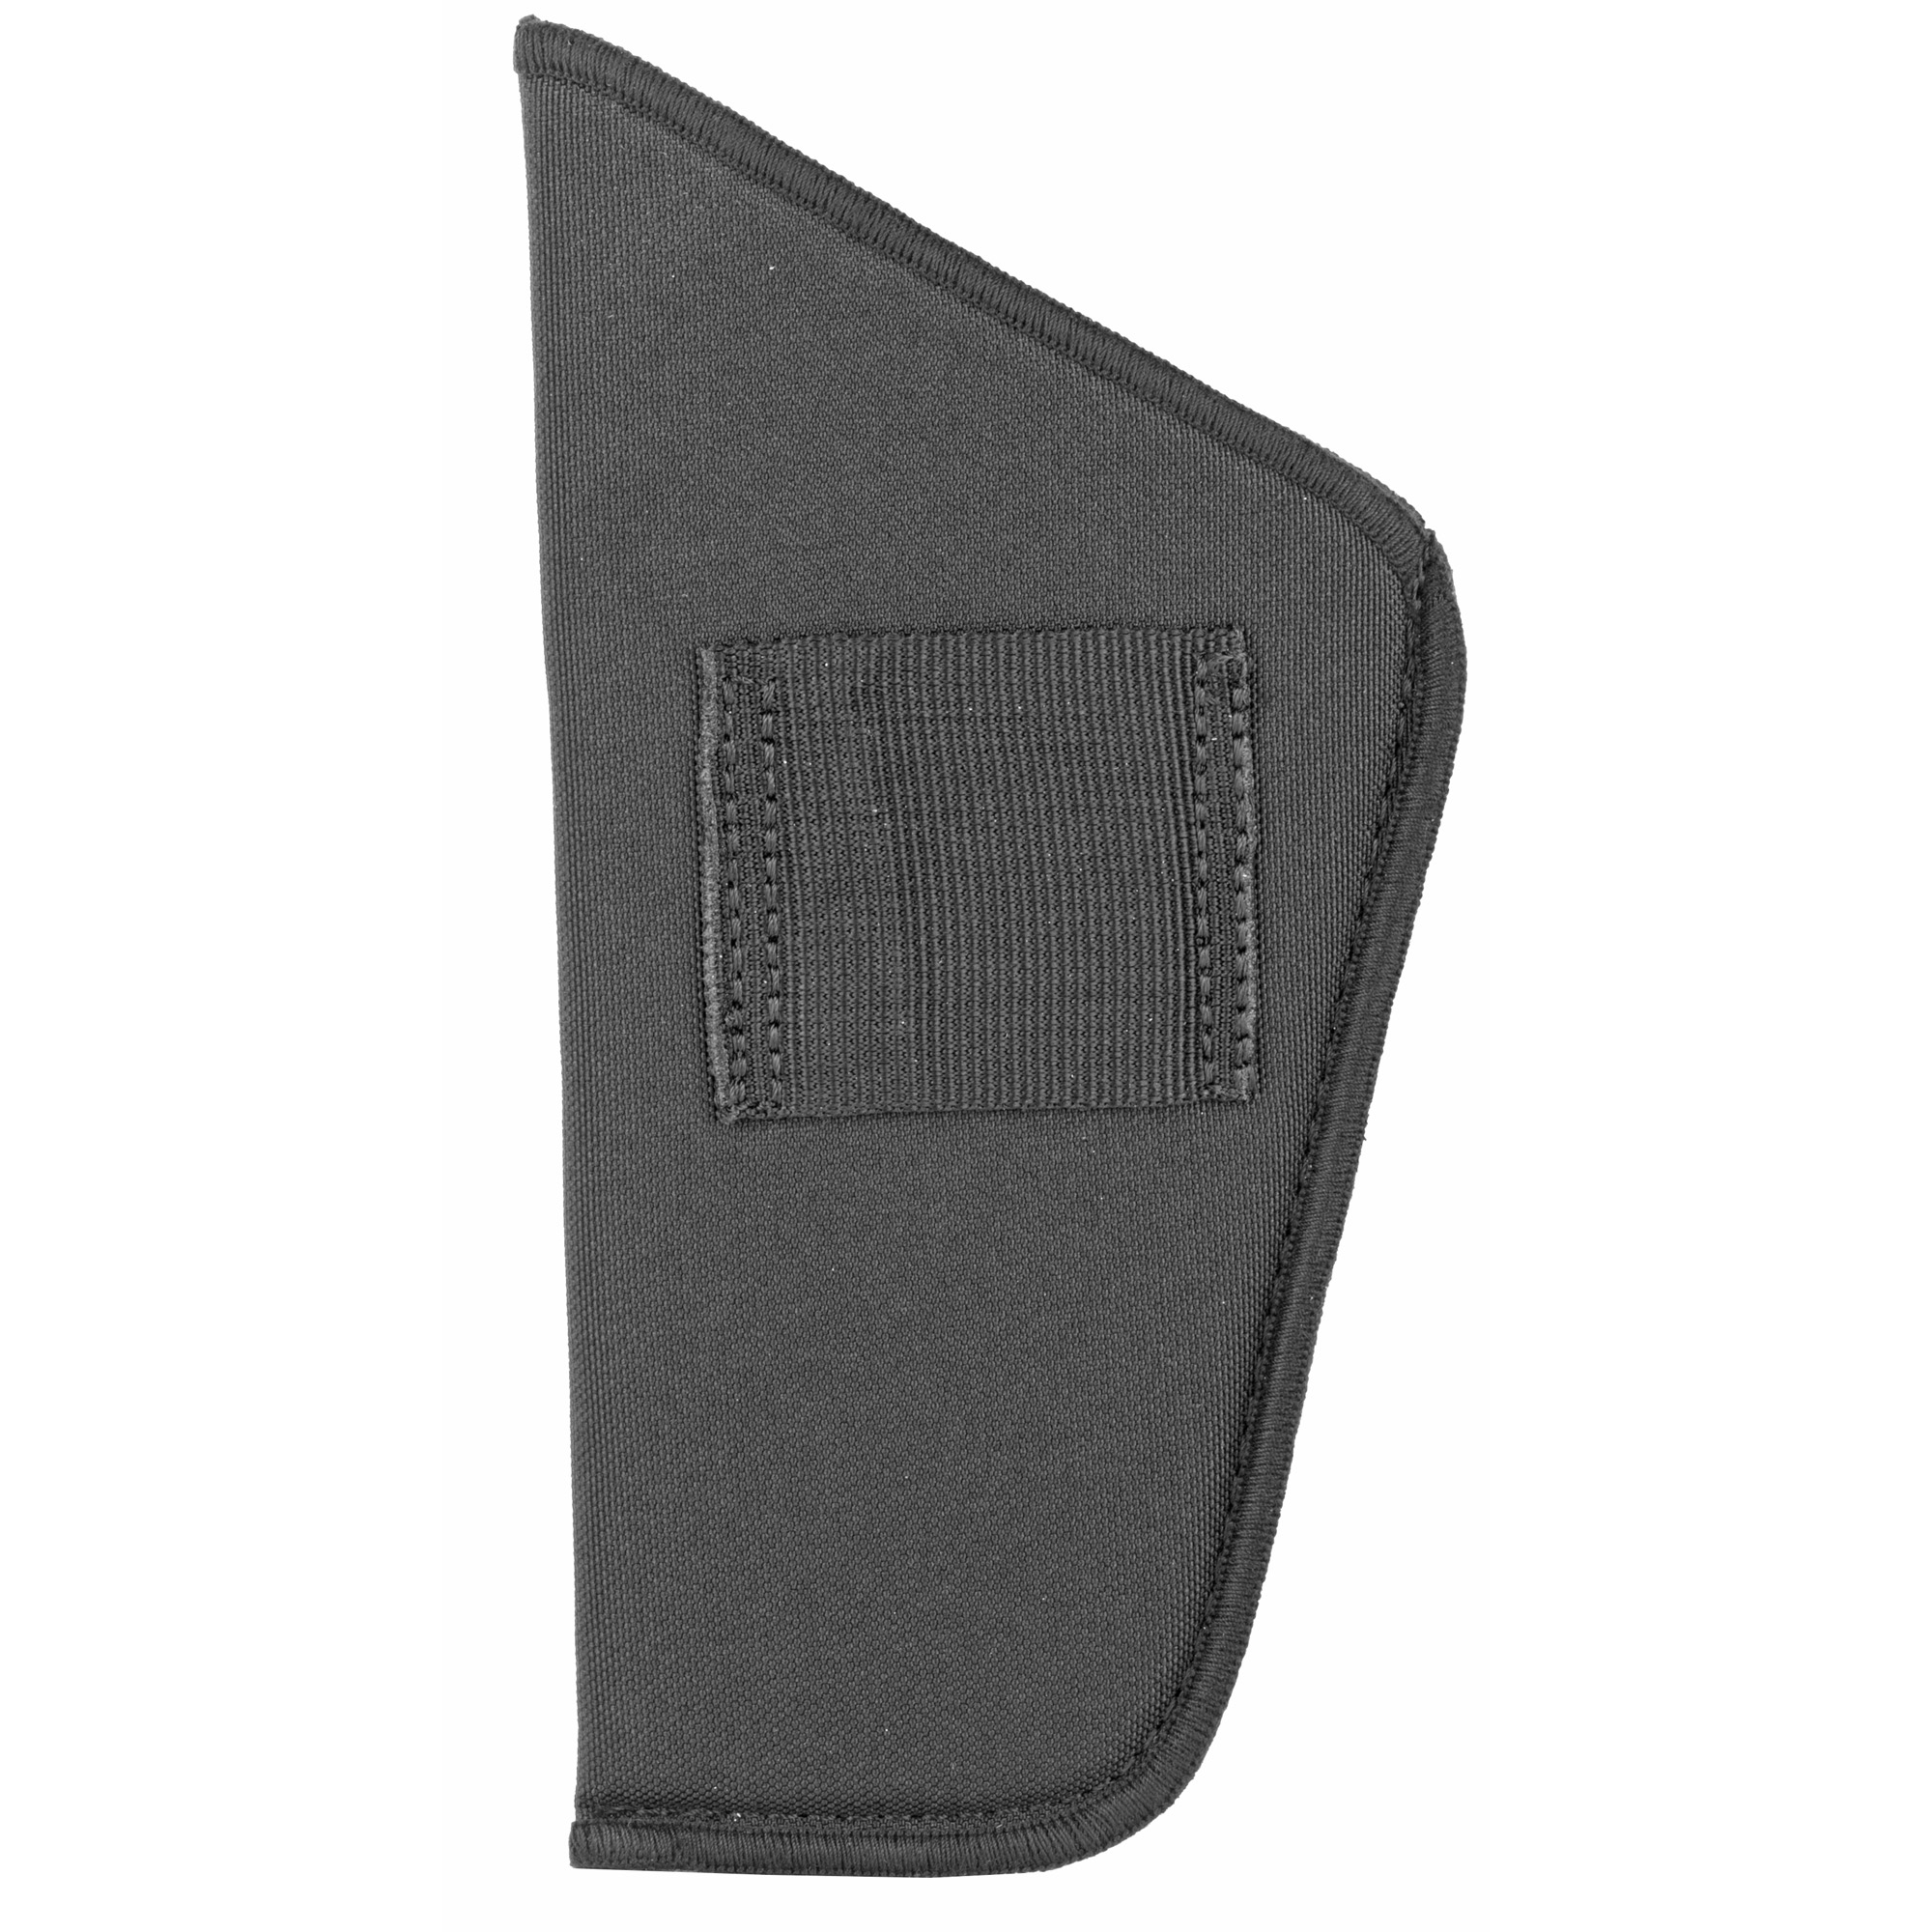 "This inside the pant holster fits large pistols with 5"" barrels."